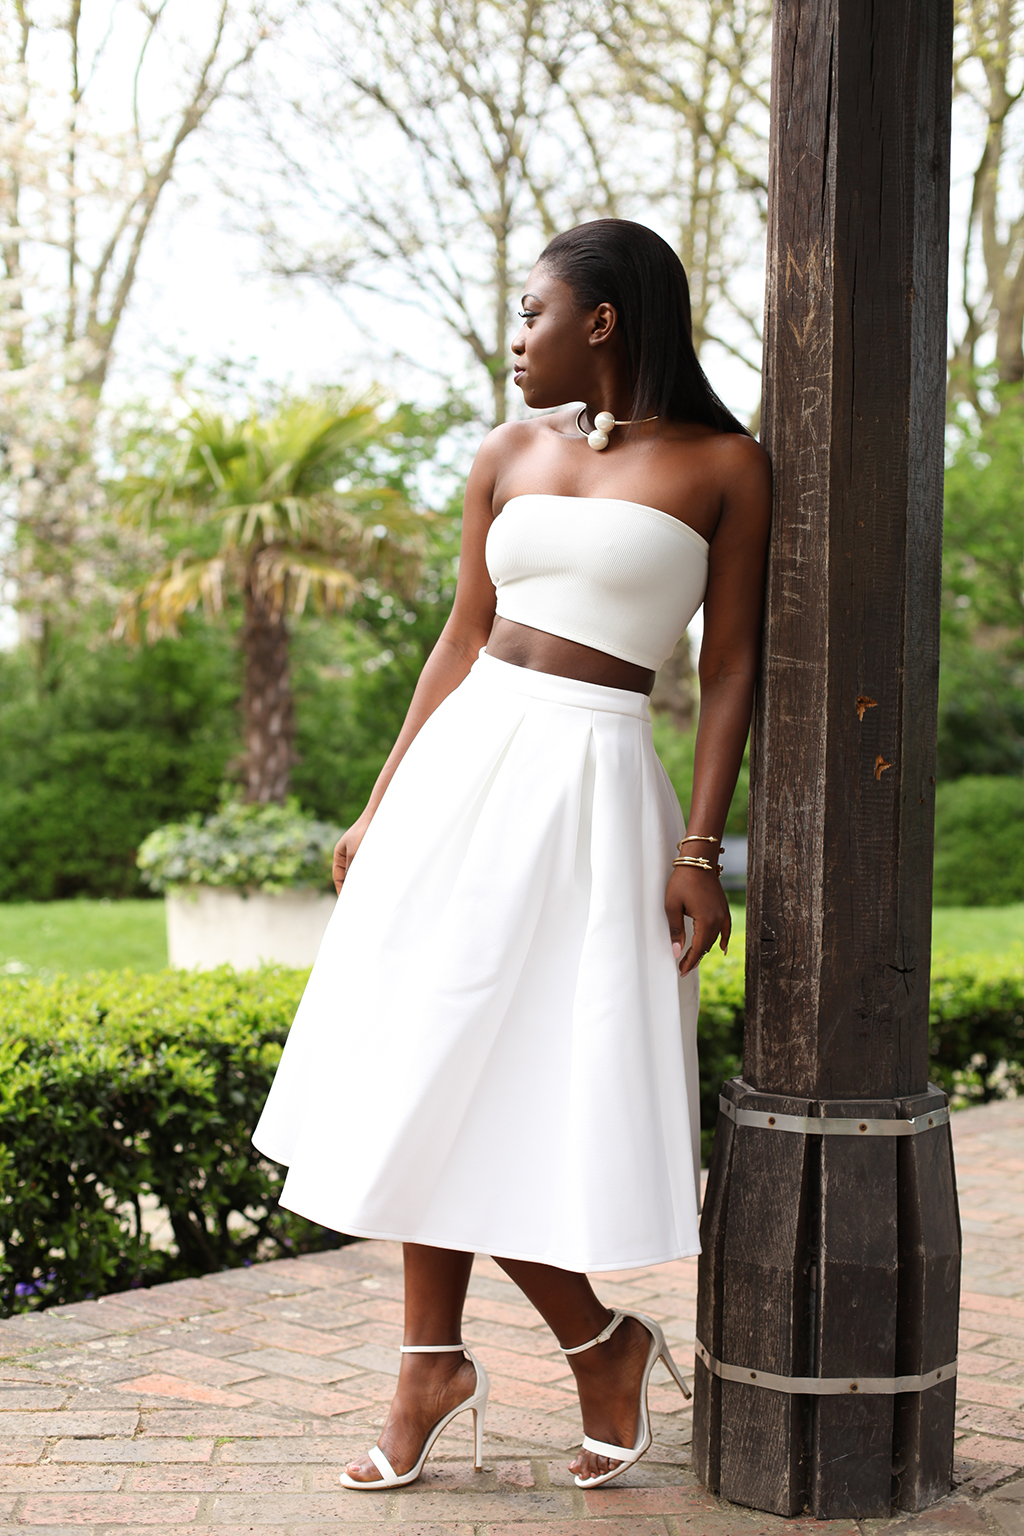 WHITE FULL SKIRT - Mirror Me | London Fashion, Travel & Personal ...